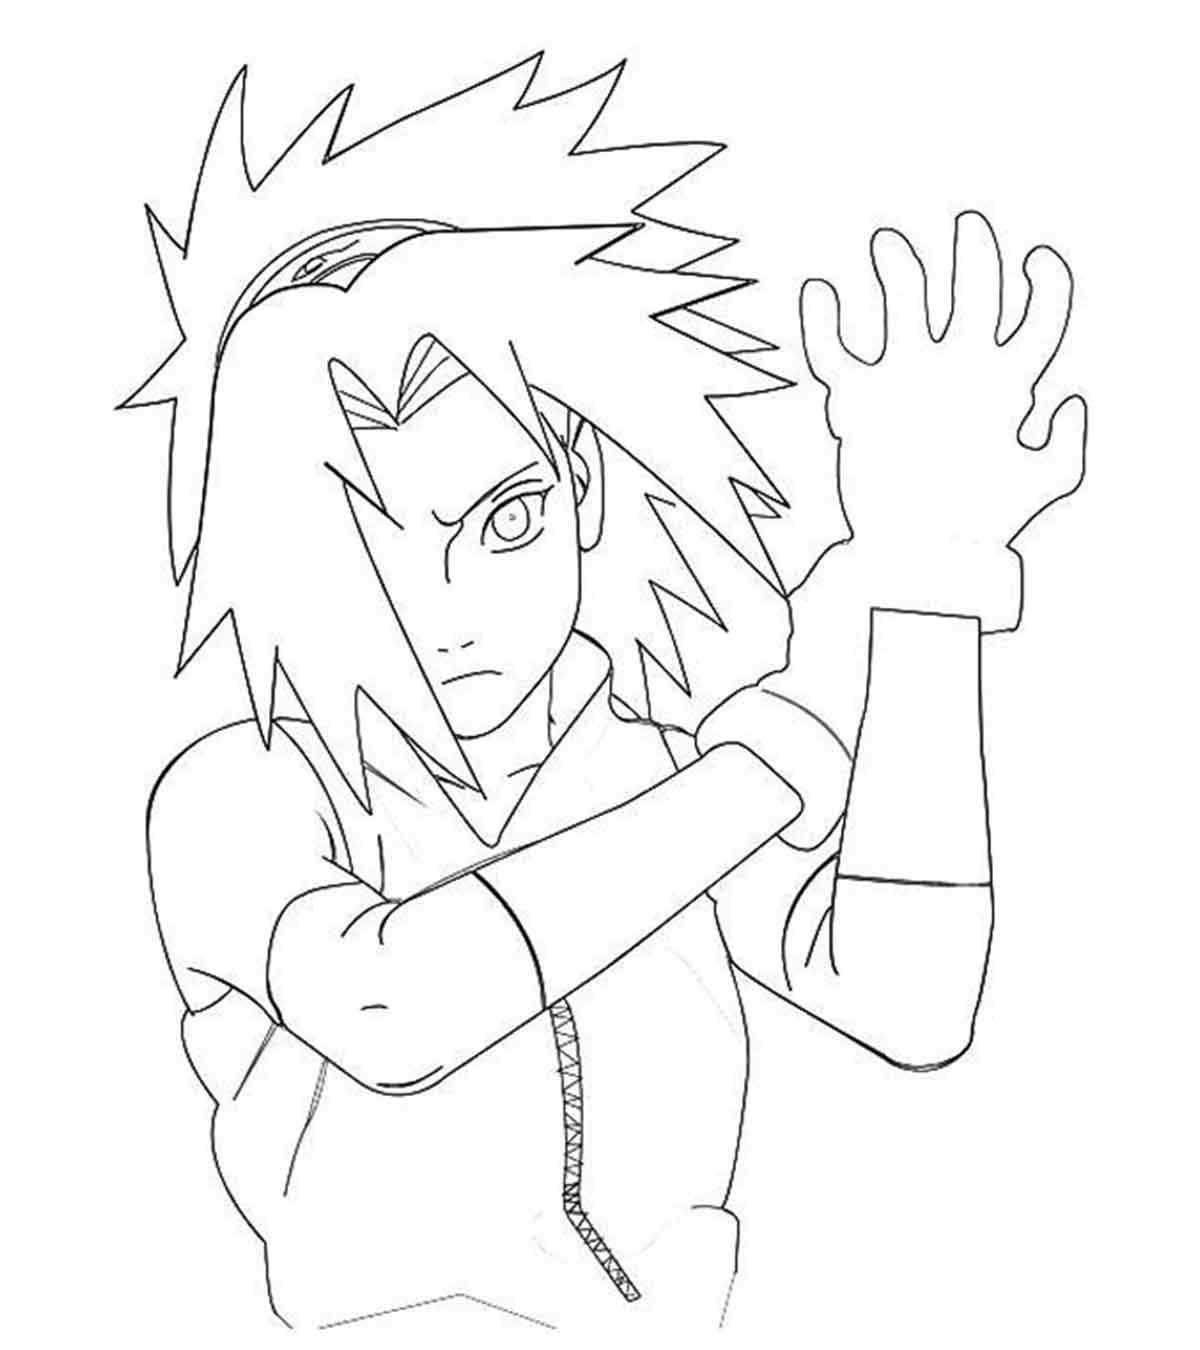 51 Coloring Page Naruto Chibi Coloring Pages Coloring Pages Unicorn Coloring Pages